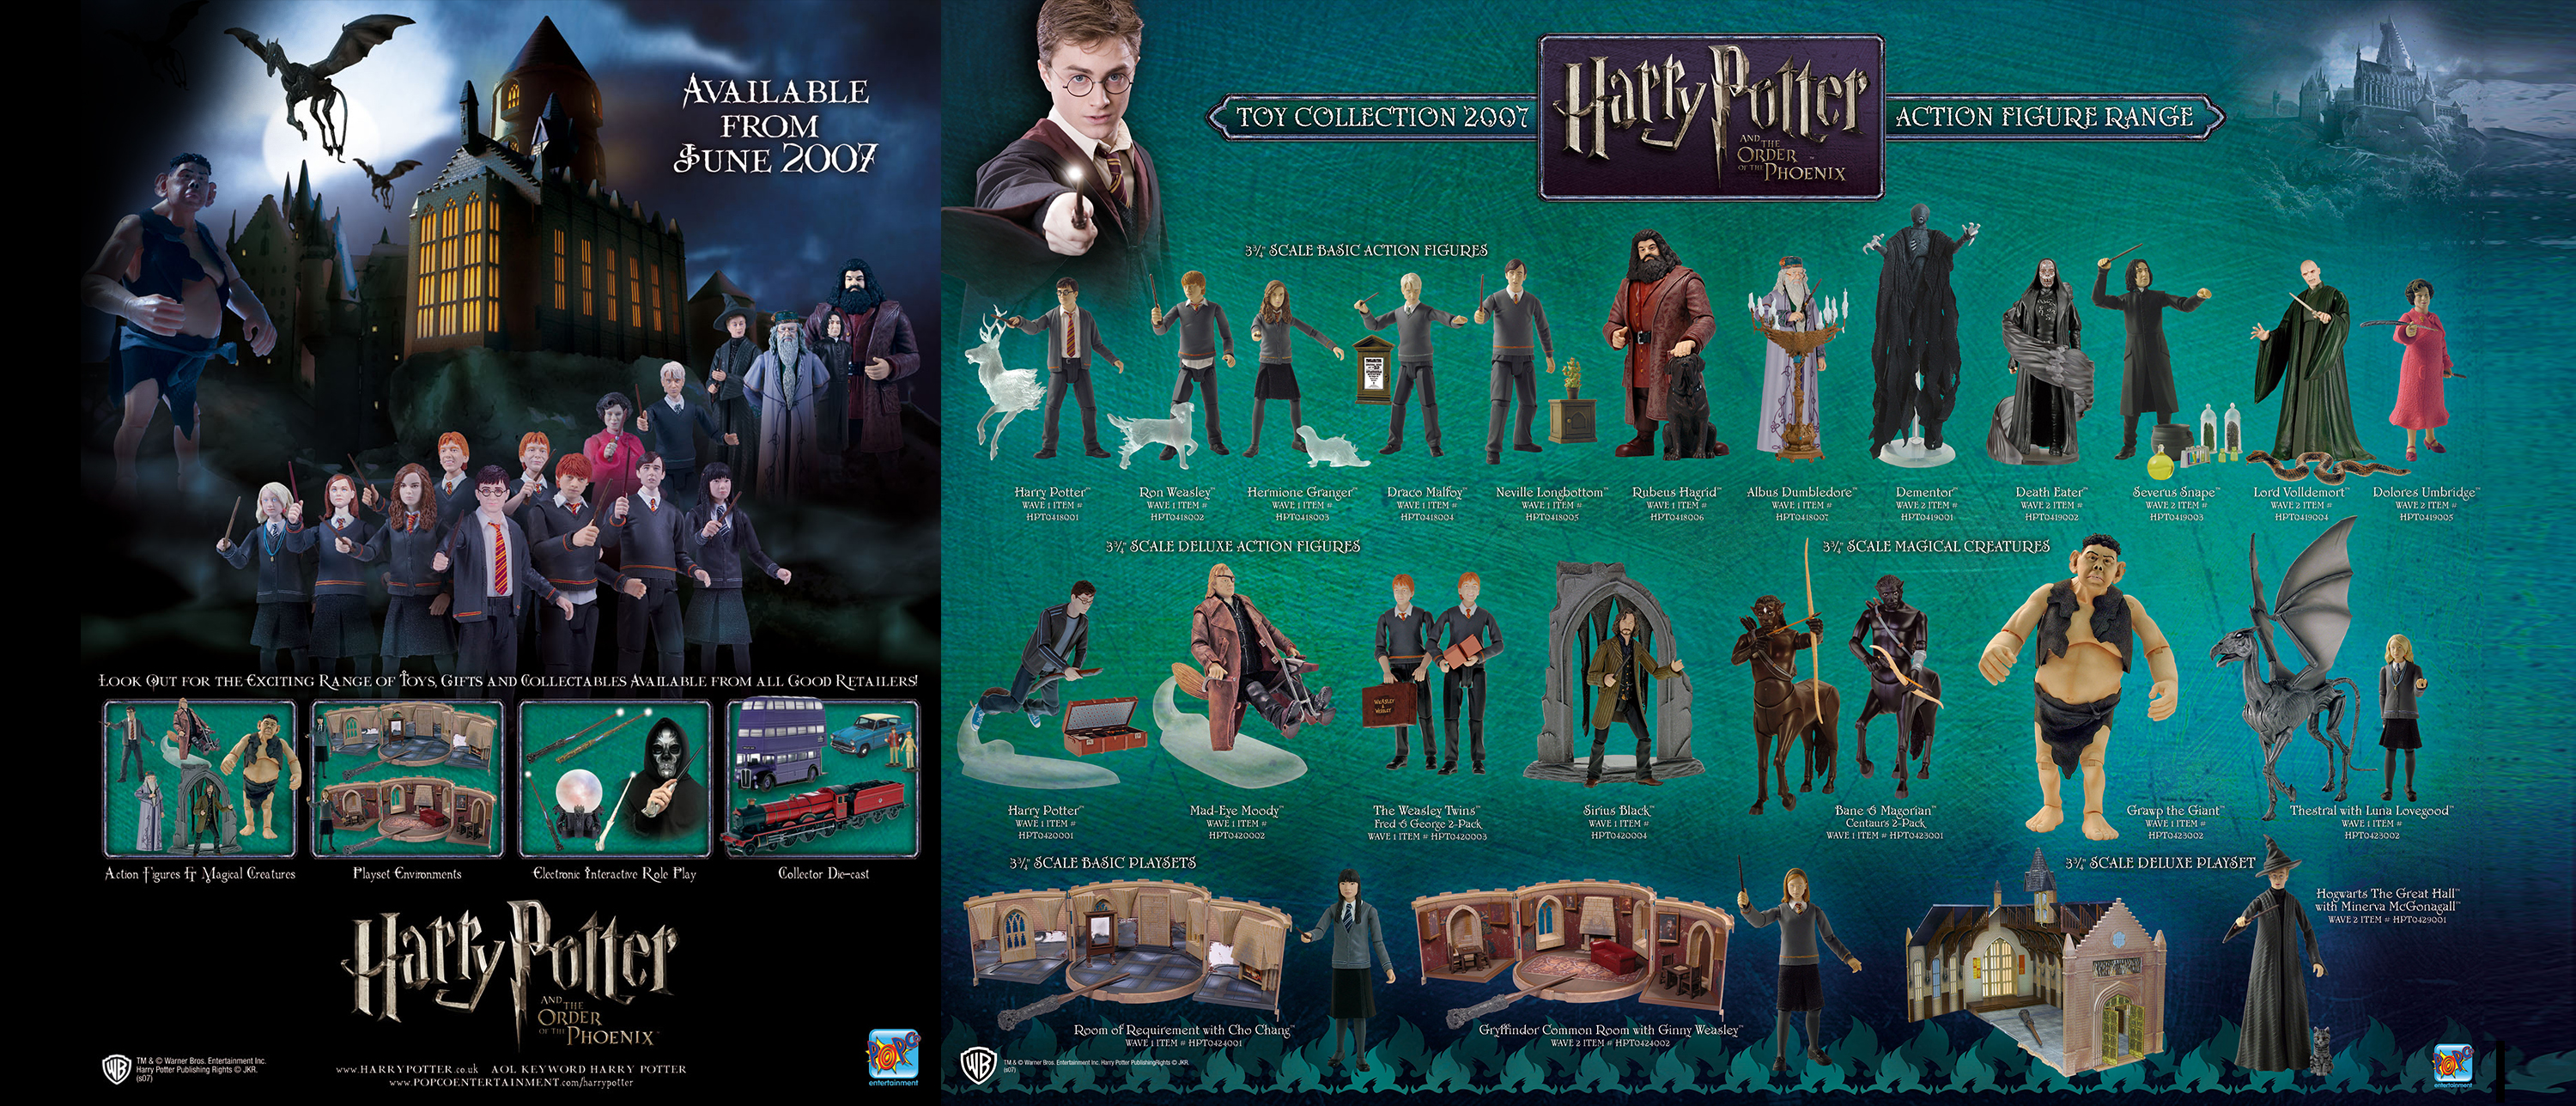 harry potter action figures and playset image 09